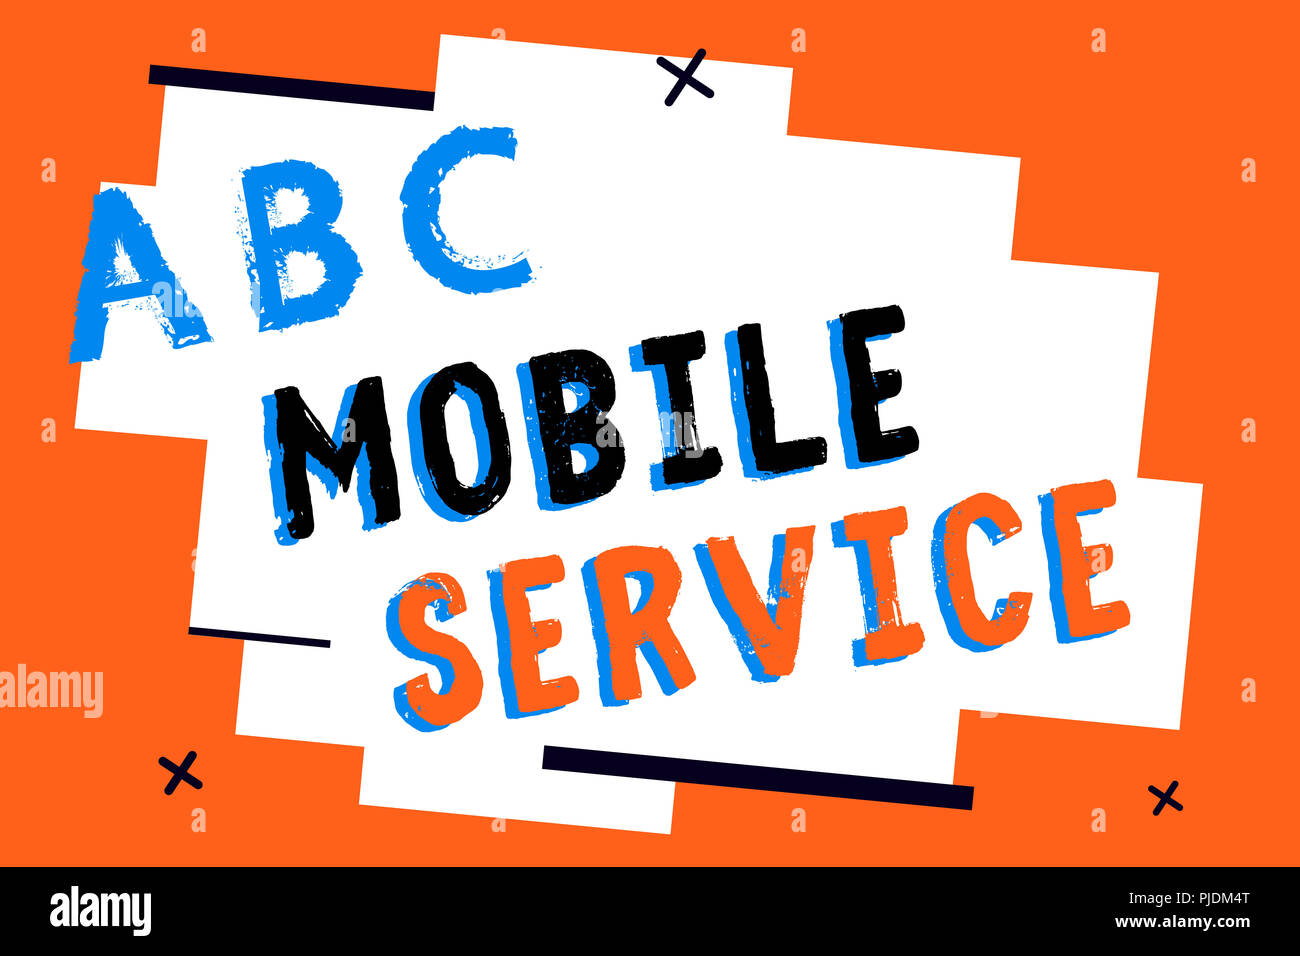 Text sign showing Mobile Service. Conceptual photo Radio communication utility between mobile and land stations. Stock Photo